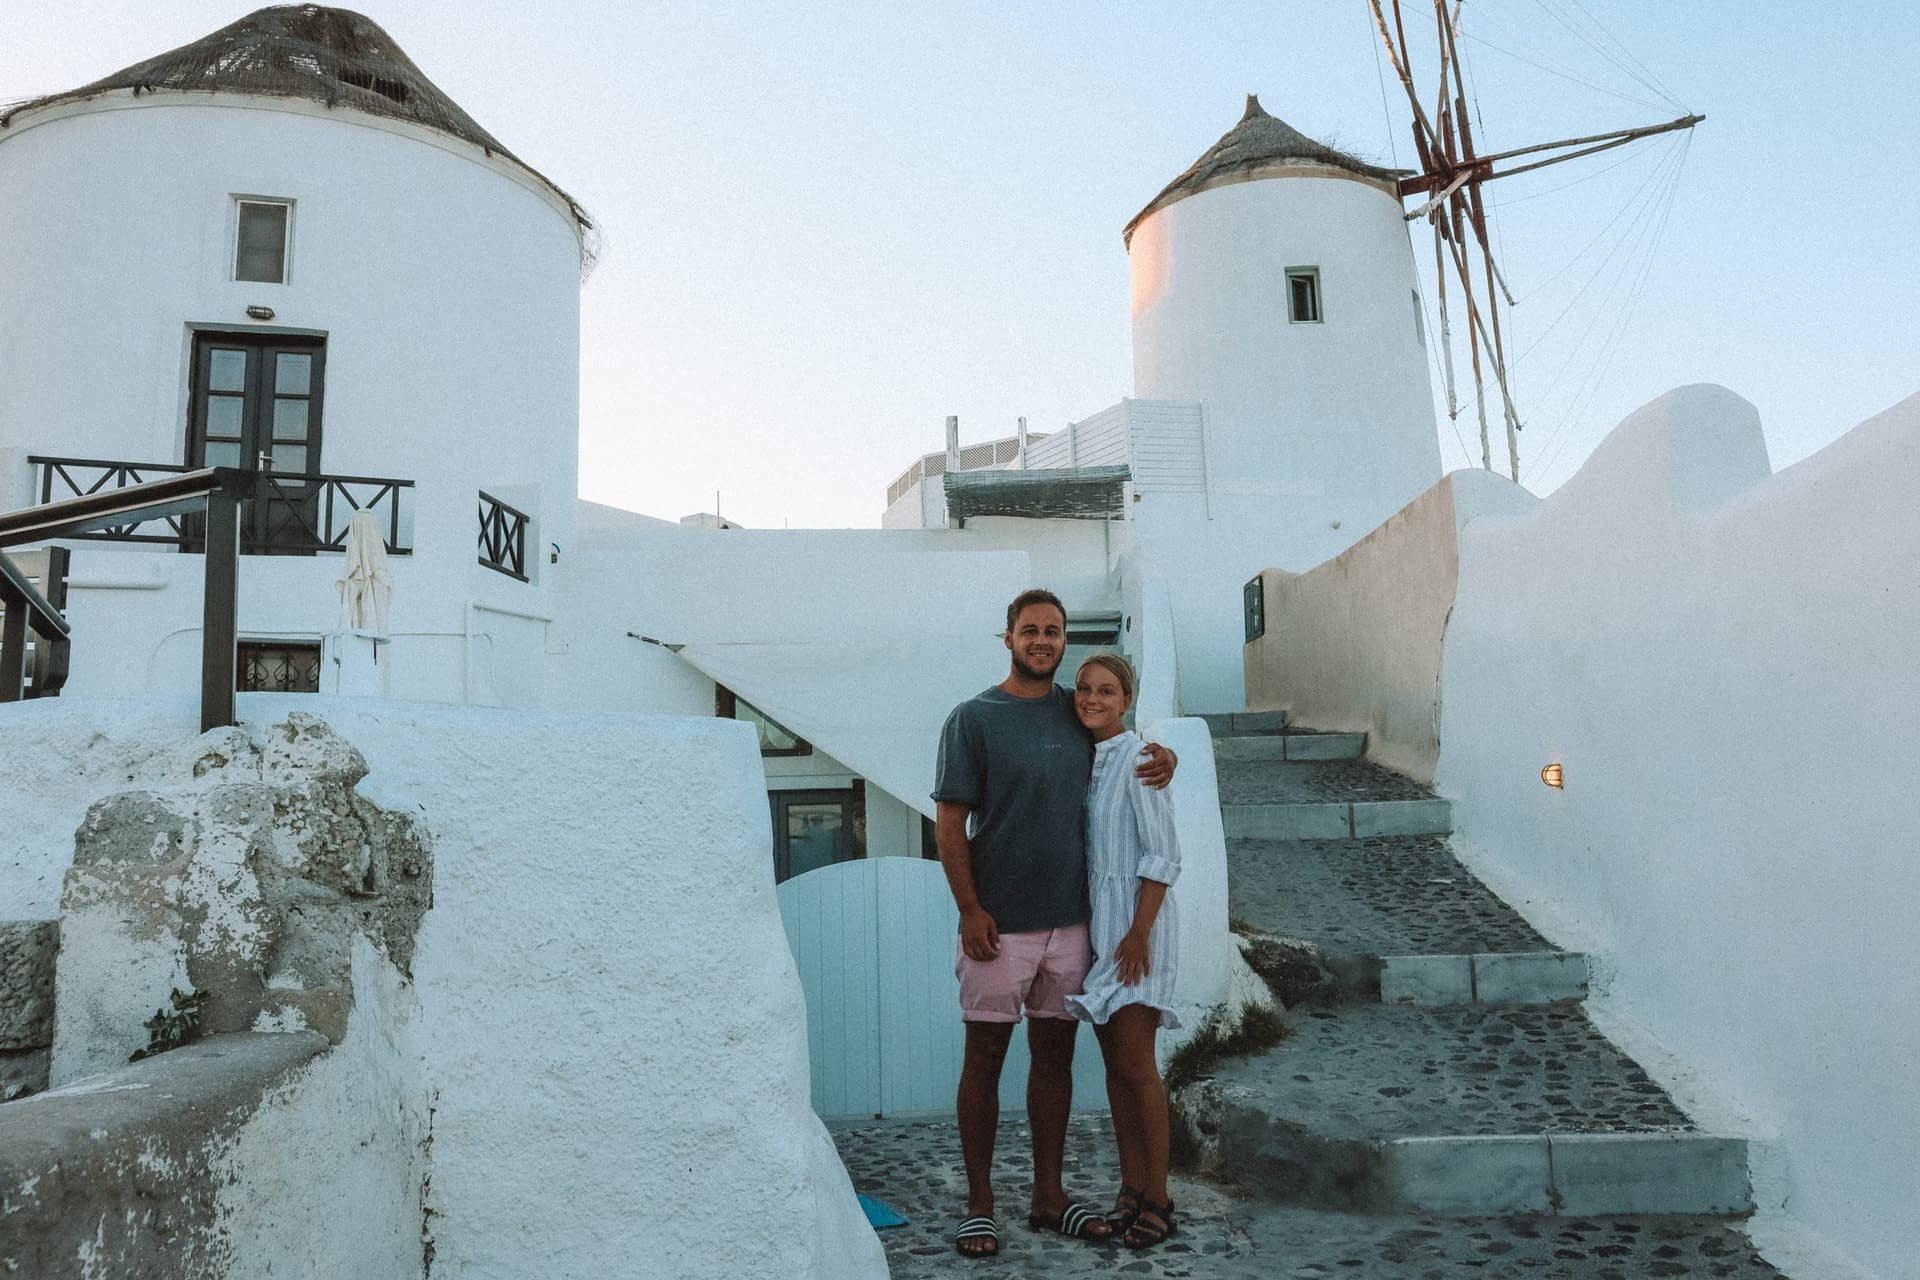 A couple stood in front of two windmills in Santorini